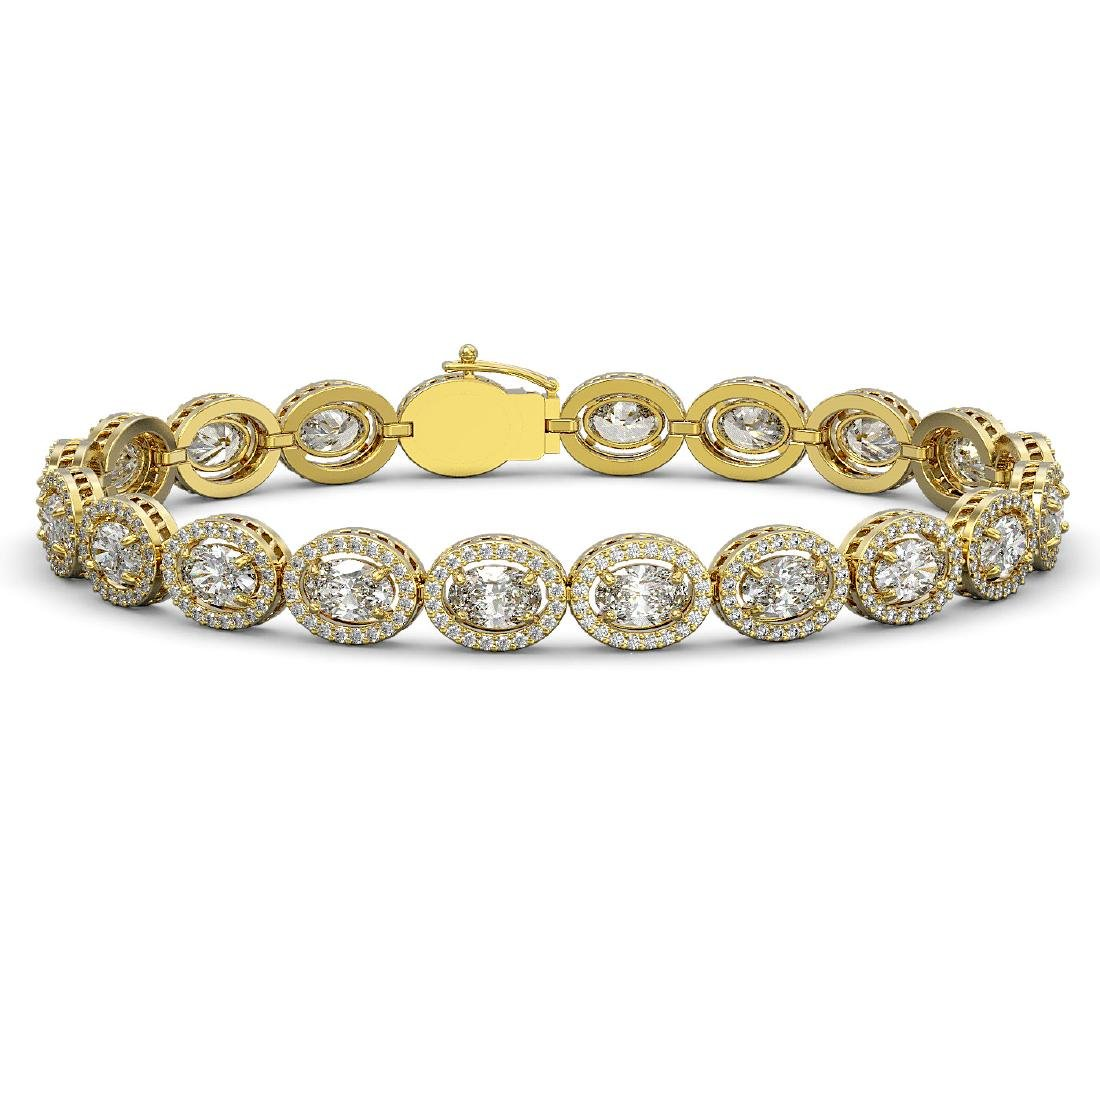 15.20 CTW Oval Diamond Designer Bracelet 18K Yellow